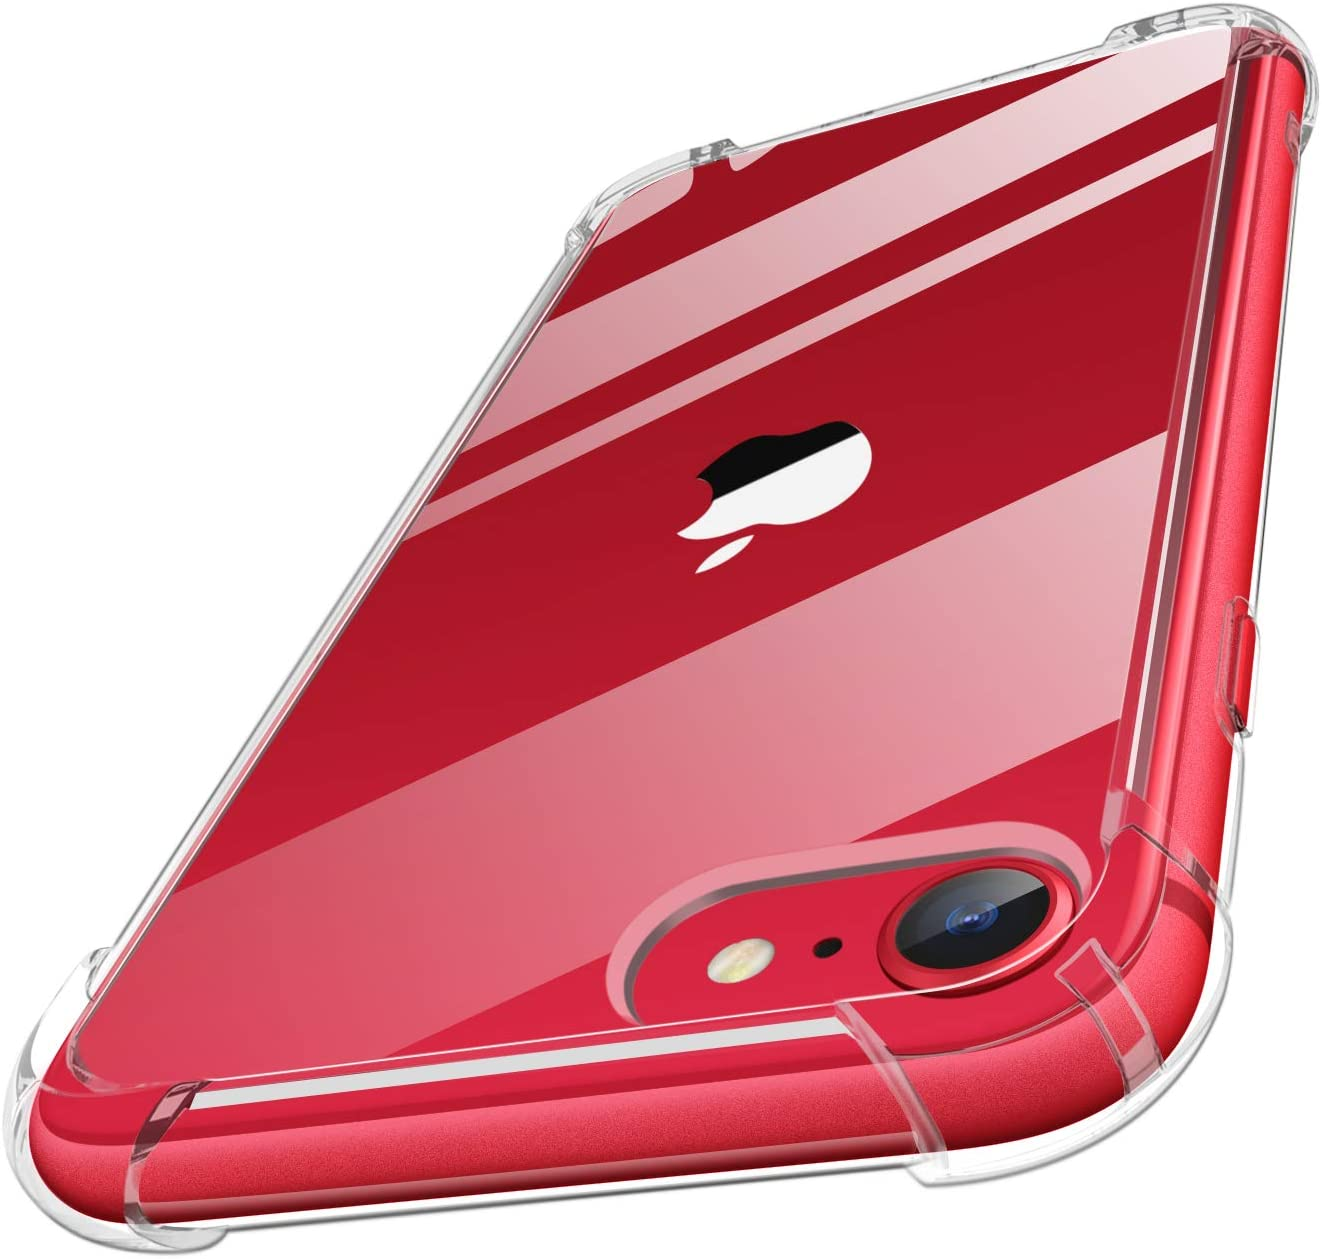 MoKo Funda Compatible con Nuevo iPhone SE 2020 Funda/iPhone 8 Funda/iPhone 7 Funda, Choque-Absorbente Anti-Rasguño Cubierta Trasera para iPhone SE / 8/7, Cristal Claro